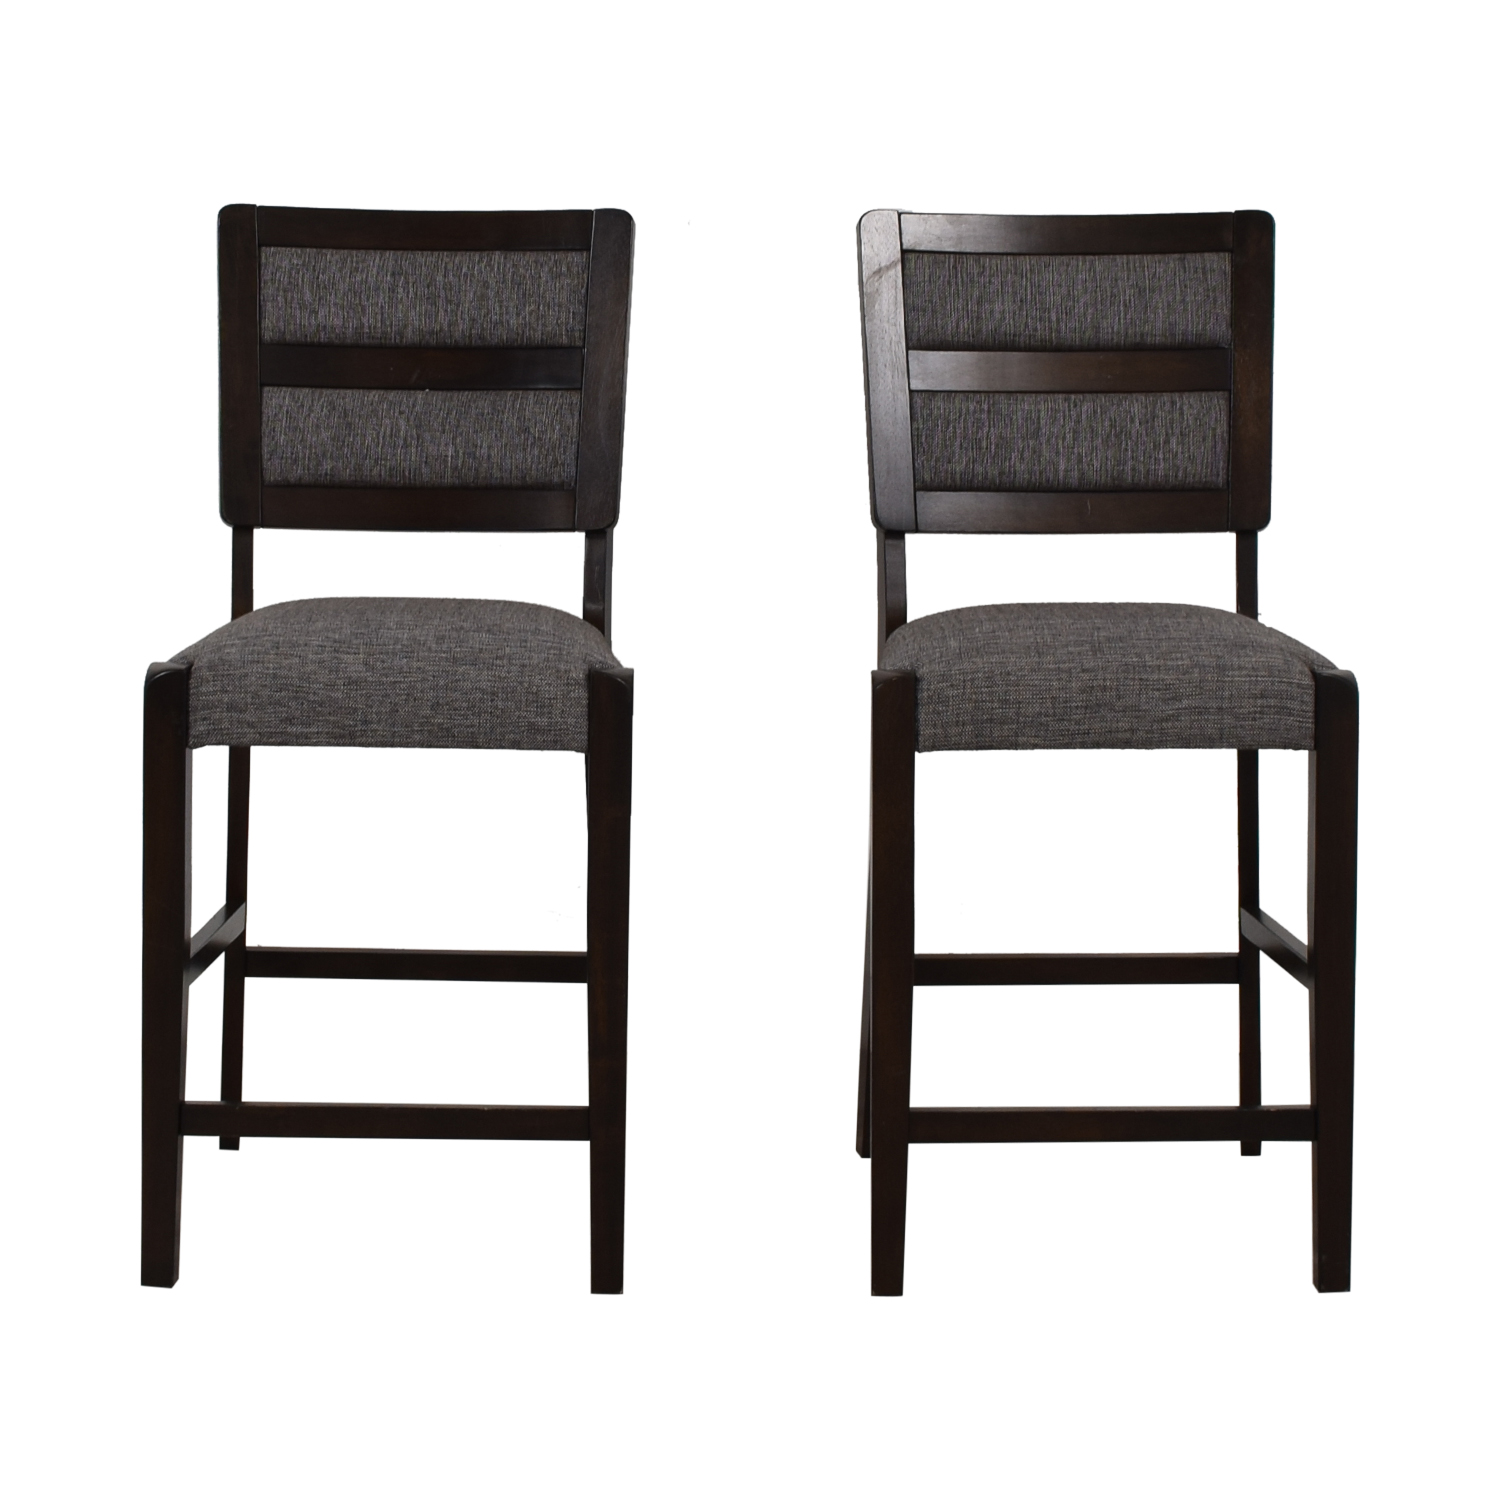 buy Raymour & Flanigan Raymour & Flanigan Grey Upholstered Counter Height Stools online